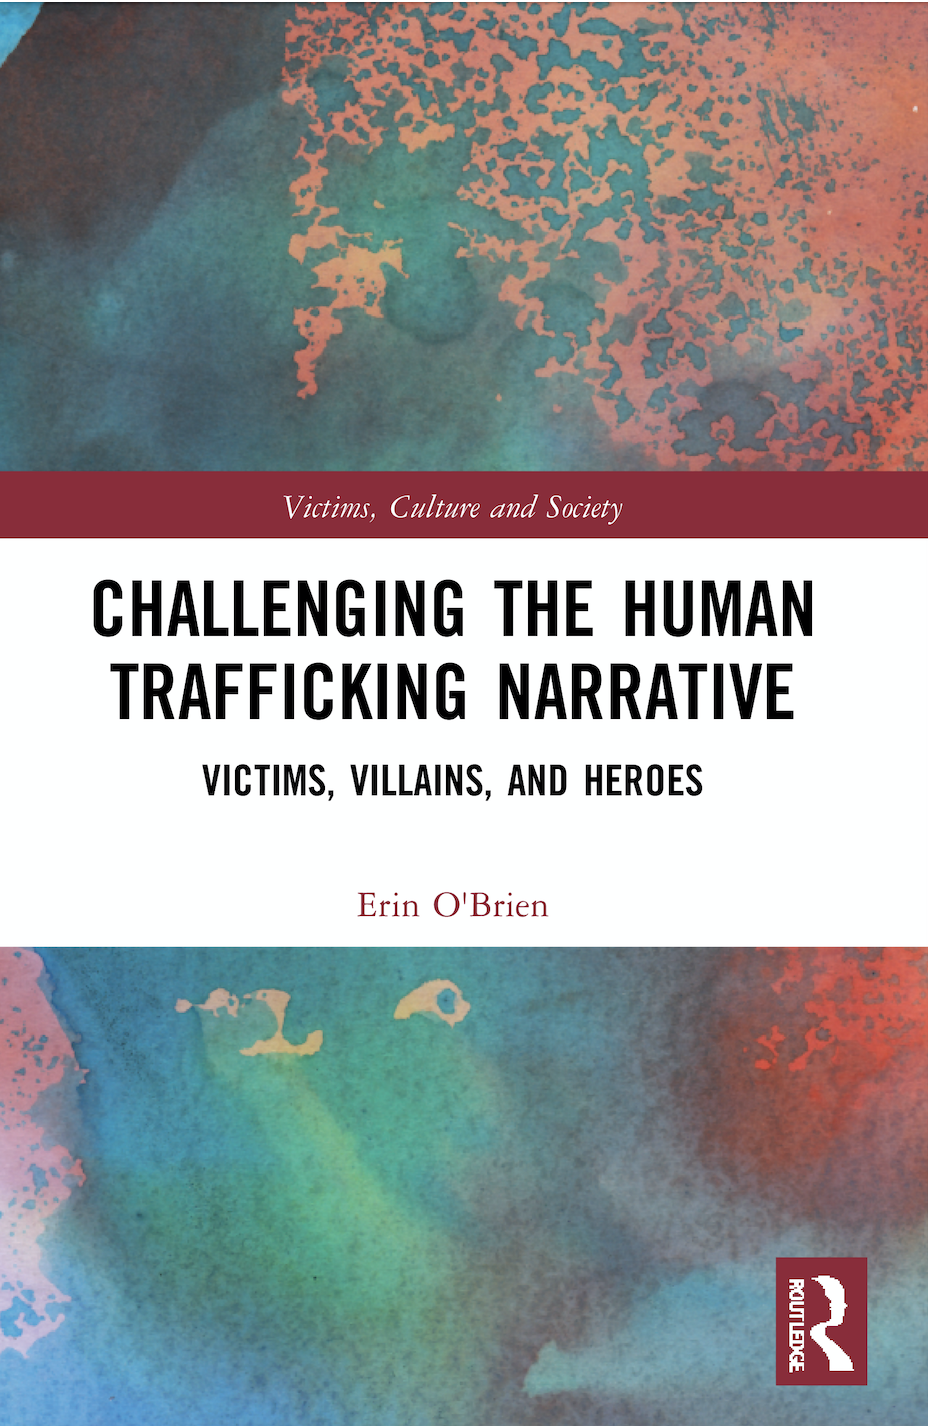 E. O'Brien. Challenging the Human Trafficking Narrative. Victims, Villains, and Heroes